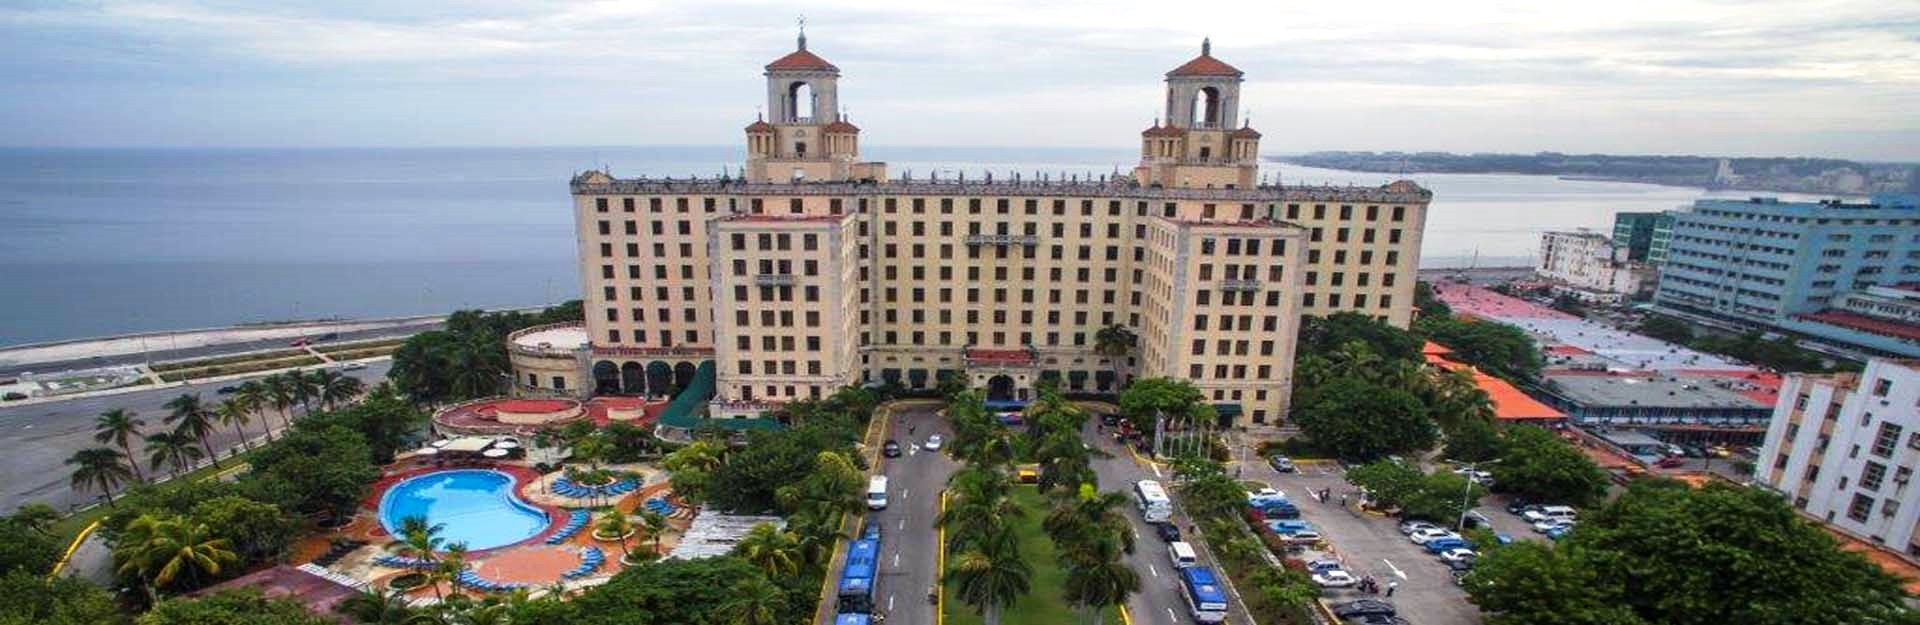 Nationales Hotel von Kuba, Cuba Travel